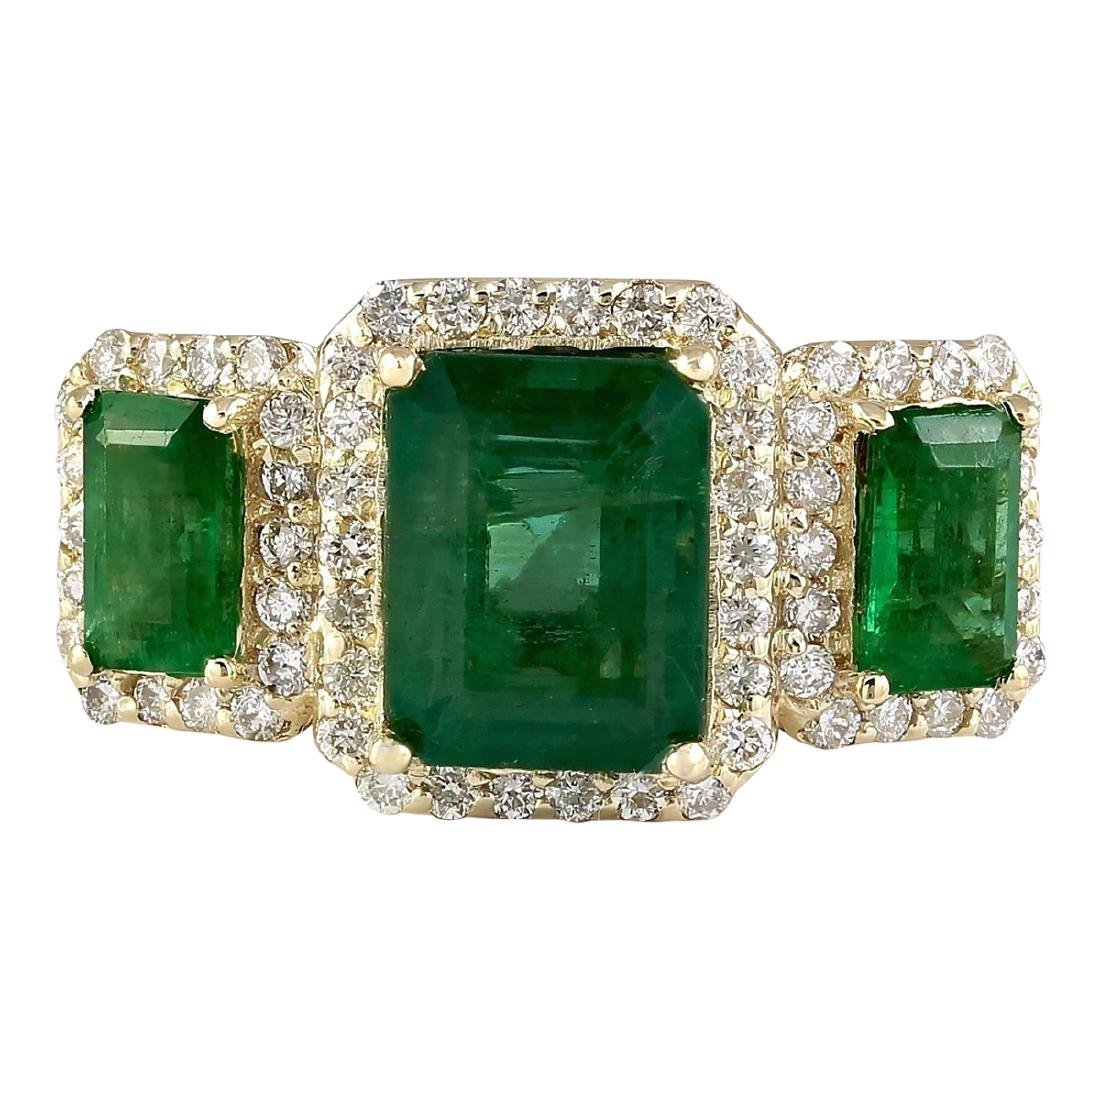 4.56 CTW Natural Emerald And Diamond Ring In 18K Yellow